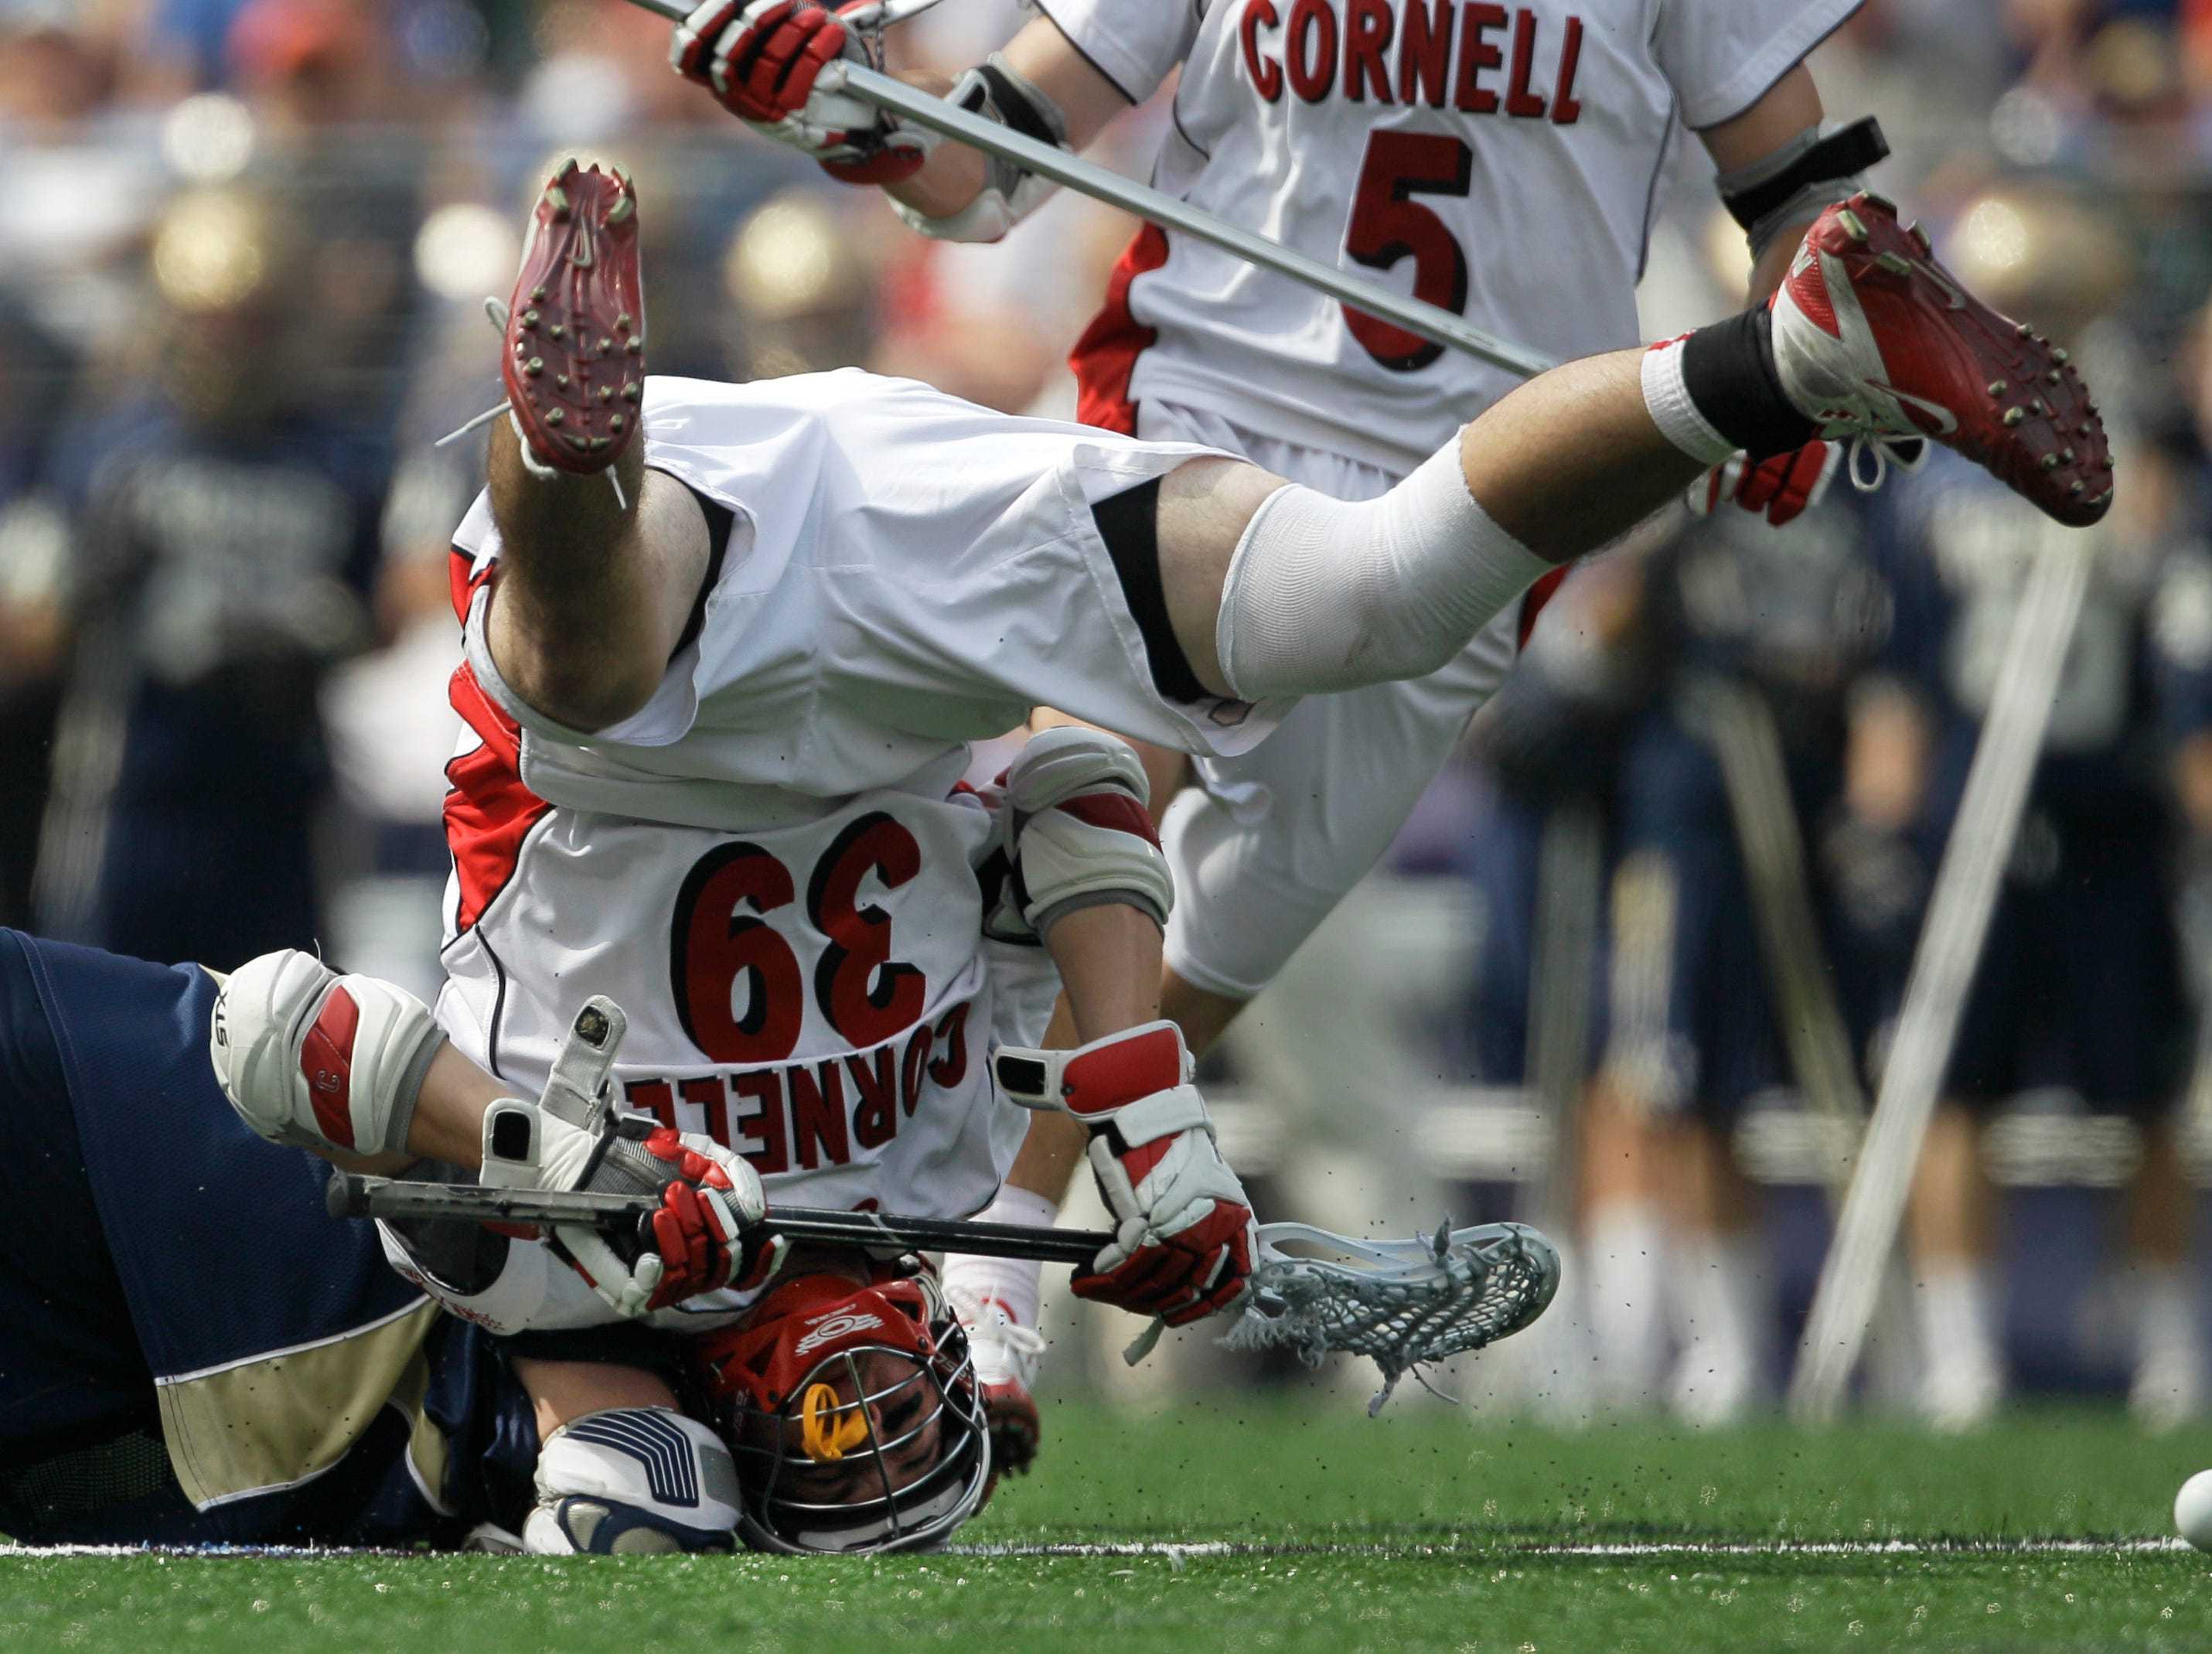 Notre Dame's Trever Sipperly, left, and Cornell's Austin Boykin (39) fight for the ball during a face off during the first half of the NCAA Men's Final Four semifinal lacrosse game, Saturday, May 29, 2010, in Baltimore.